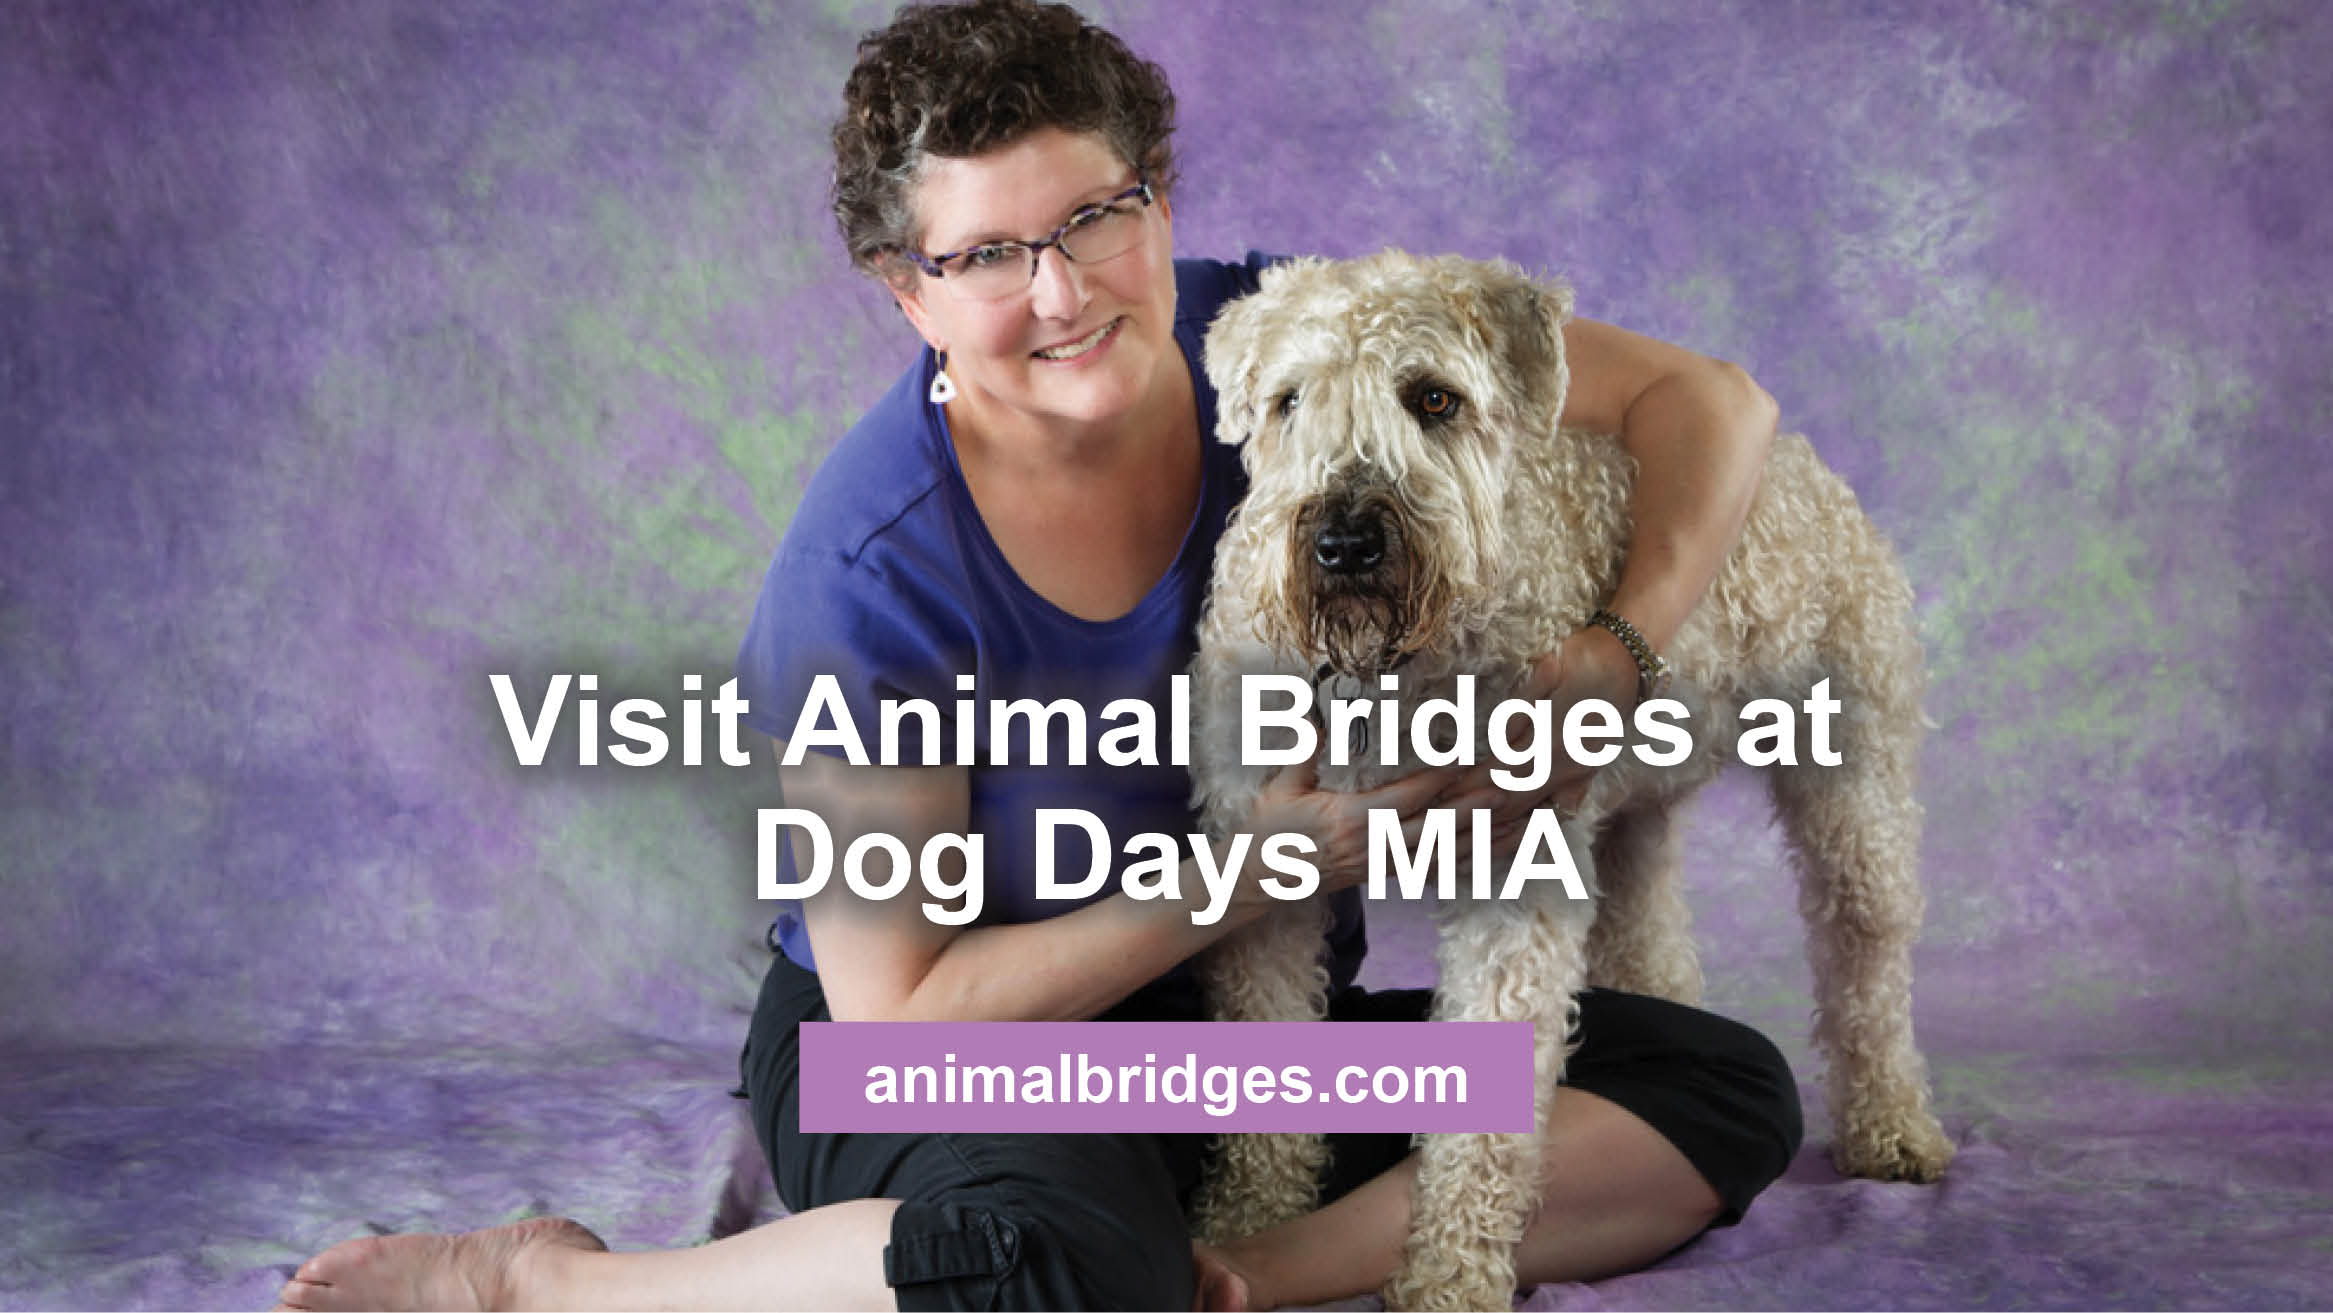 Visit Animal Bridges at Dog Days MIA